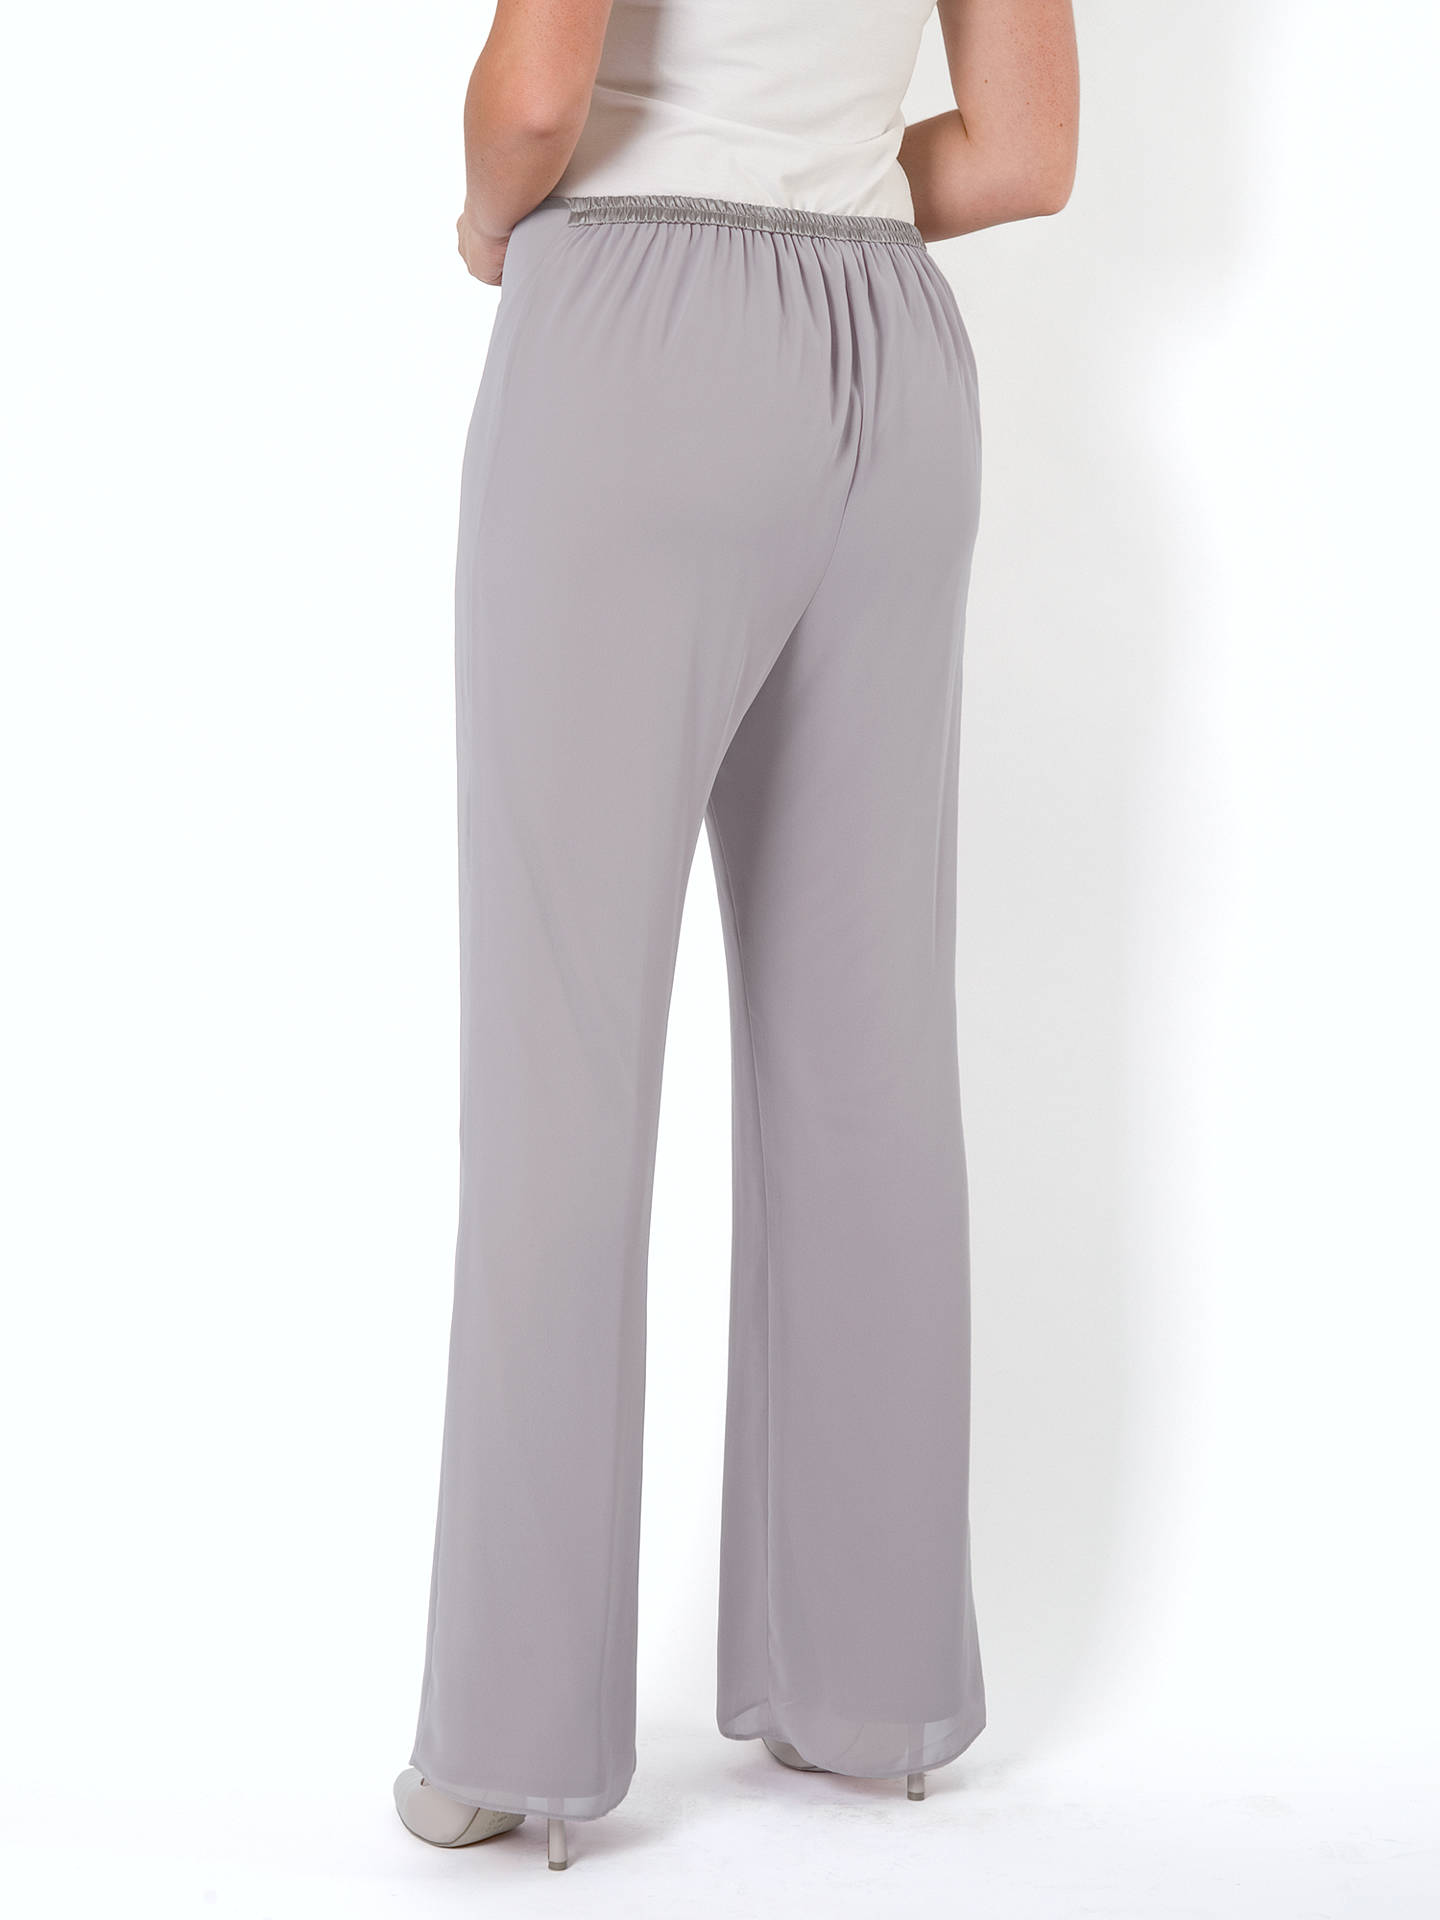 Buy Chesca Jersey Lined Chiffon Trousers, Pale Grey, 12 Online at johnlewis.com